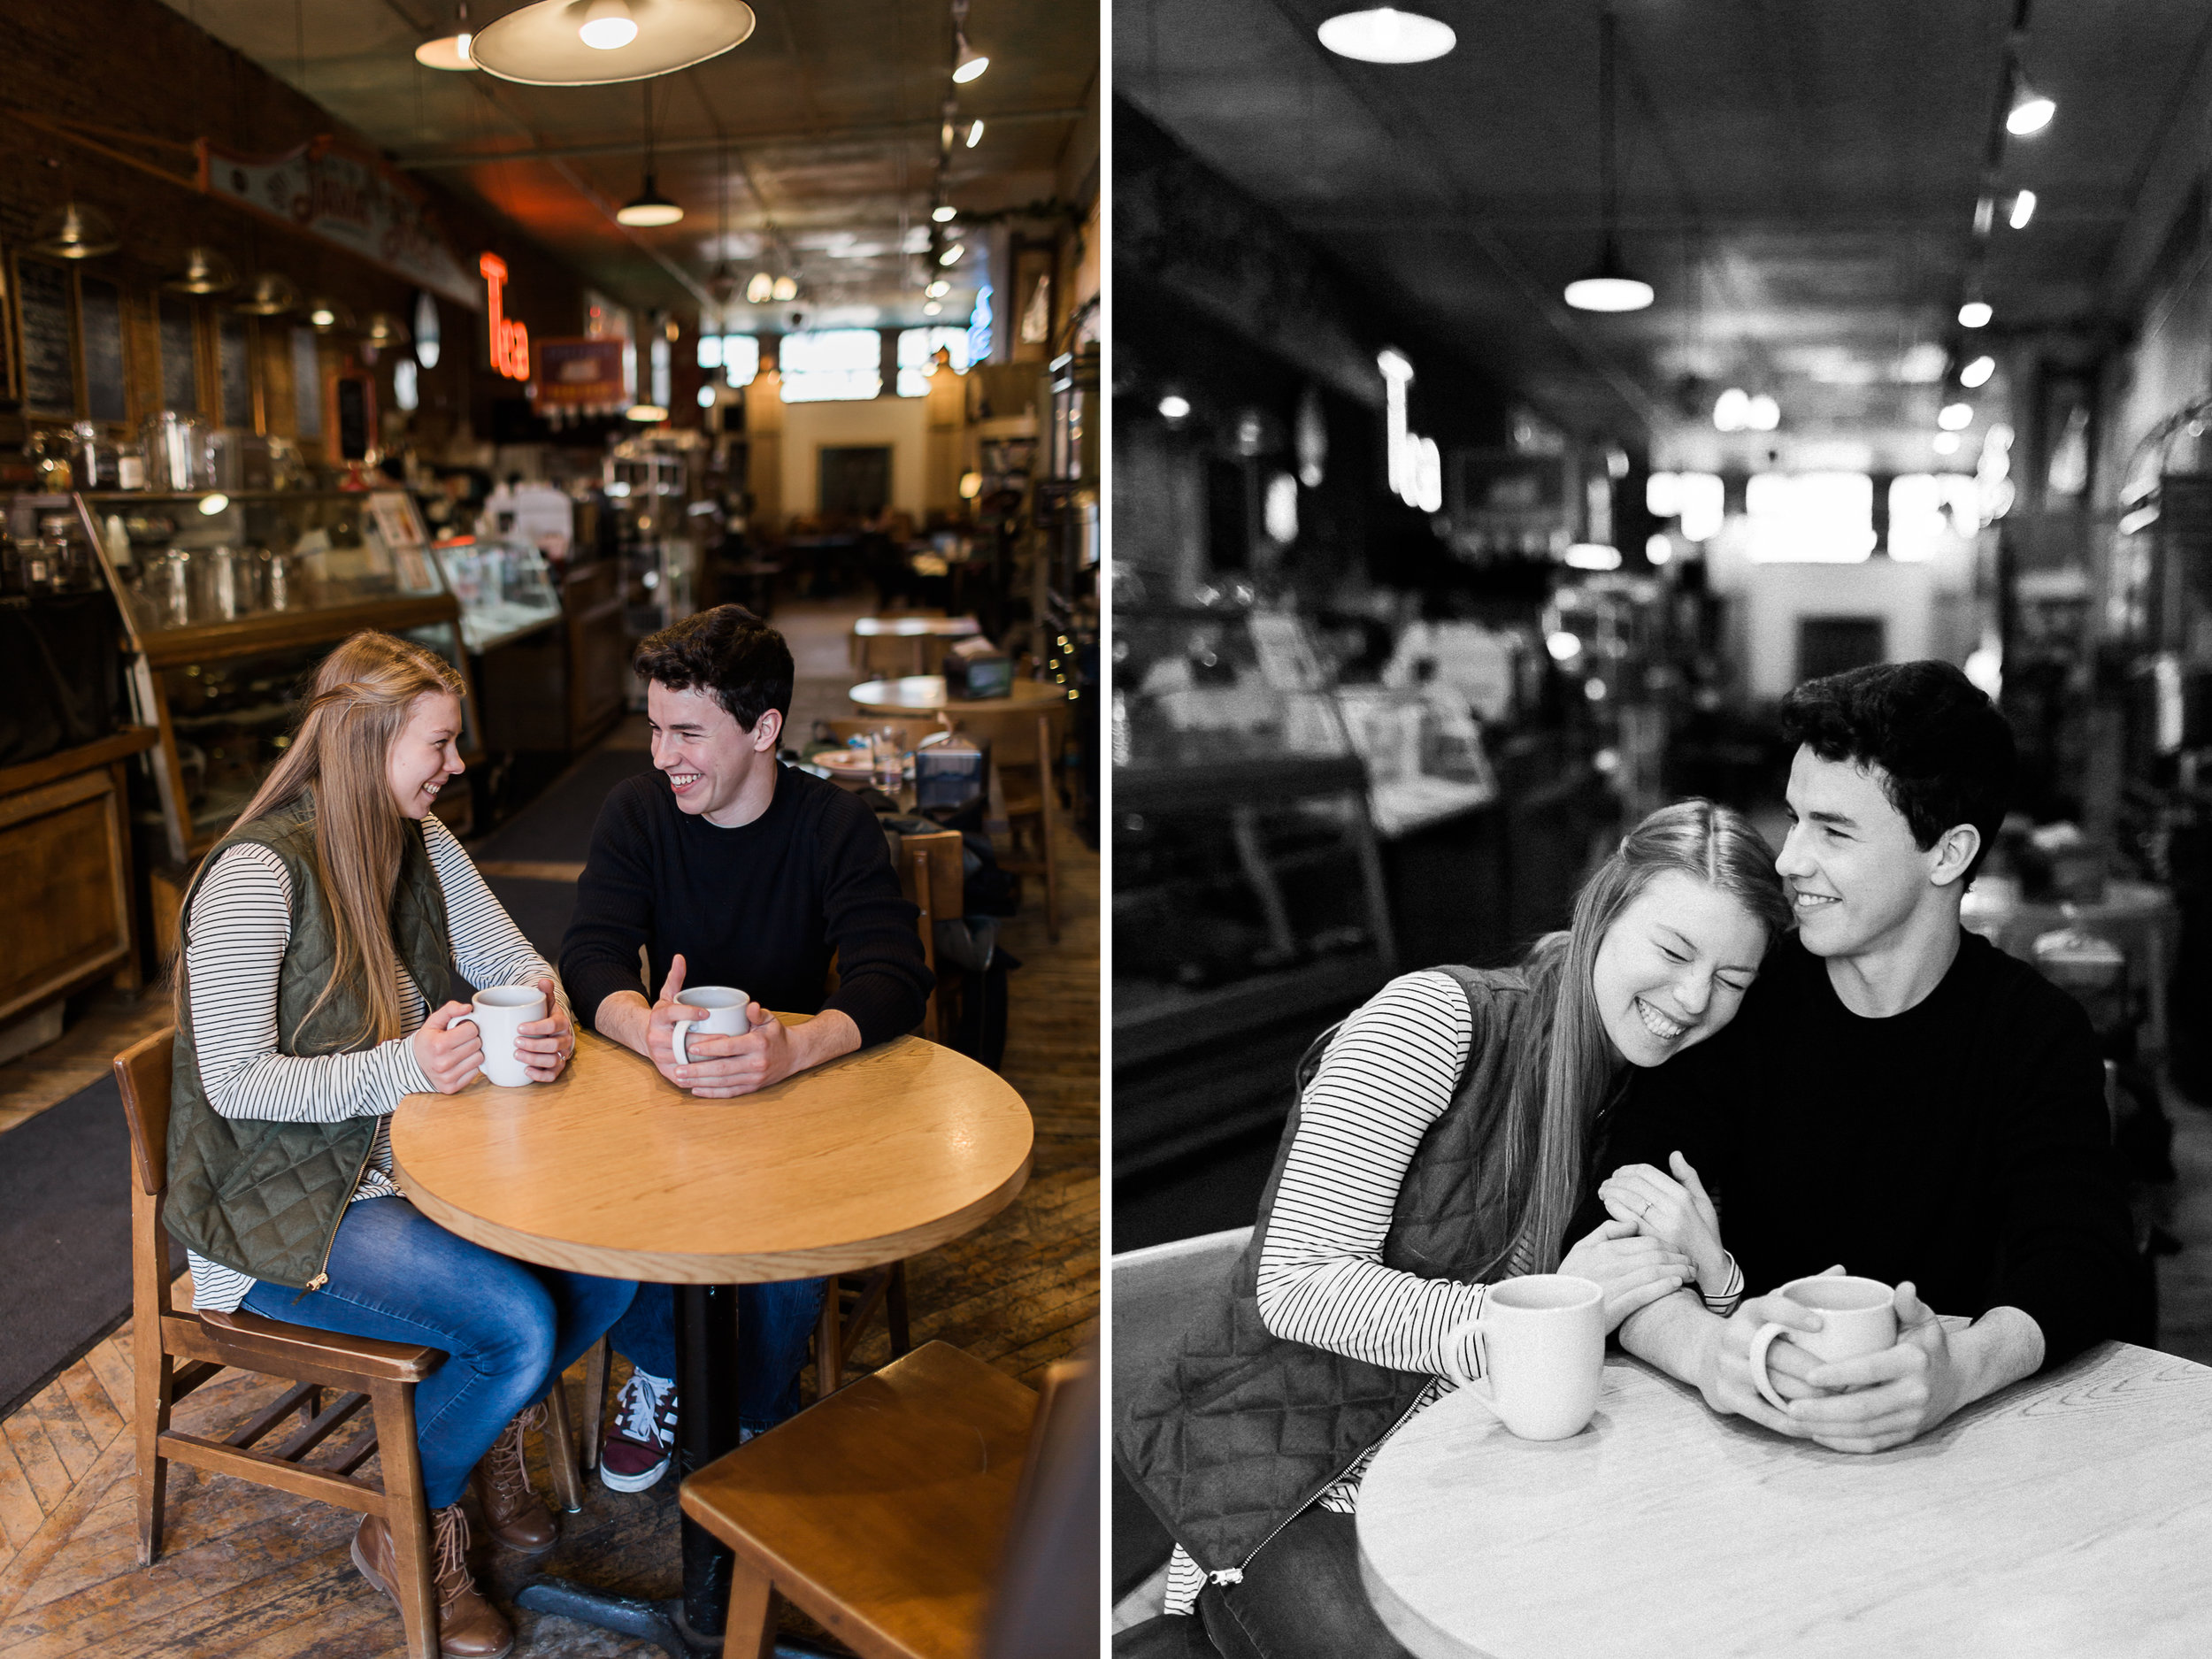 Des-Moines-coffee-shop-engagement-session-15.jpg